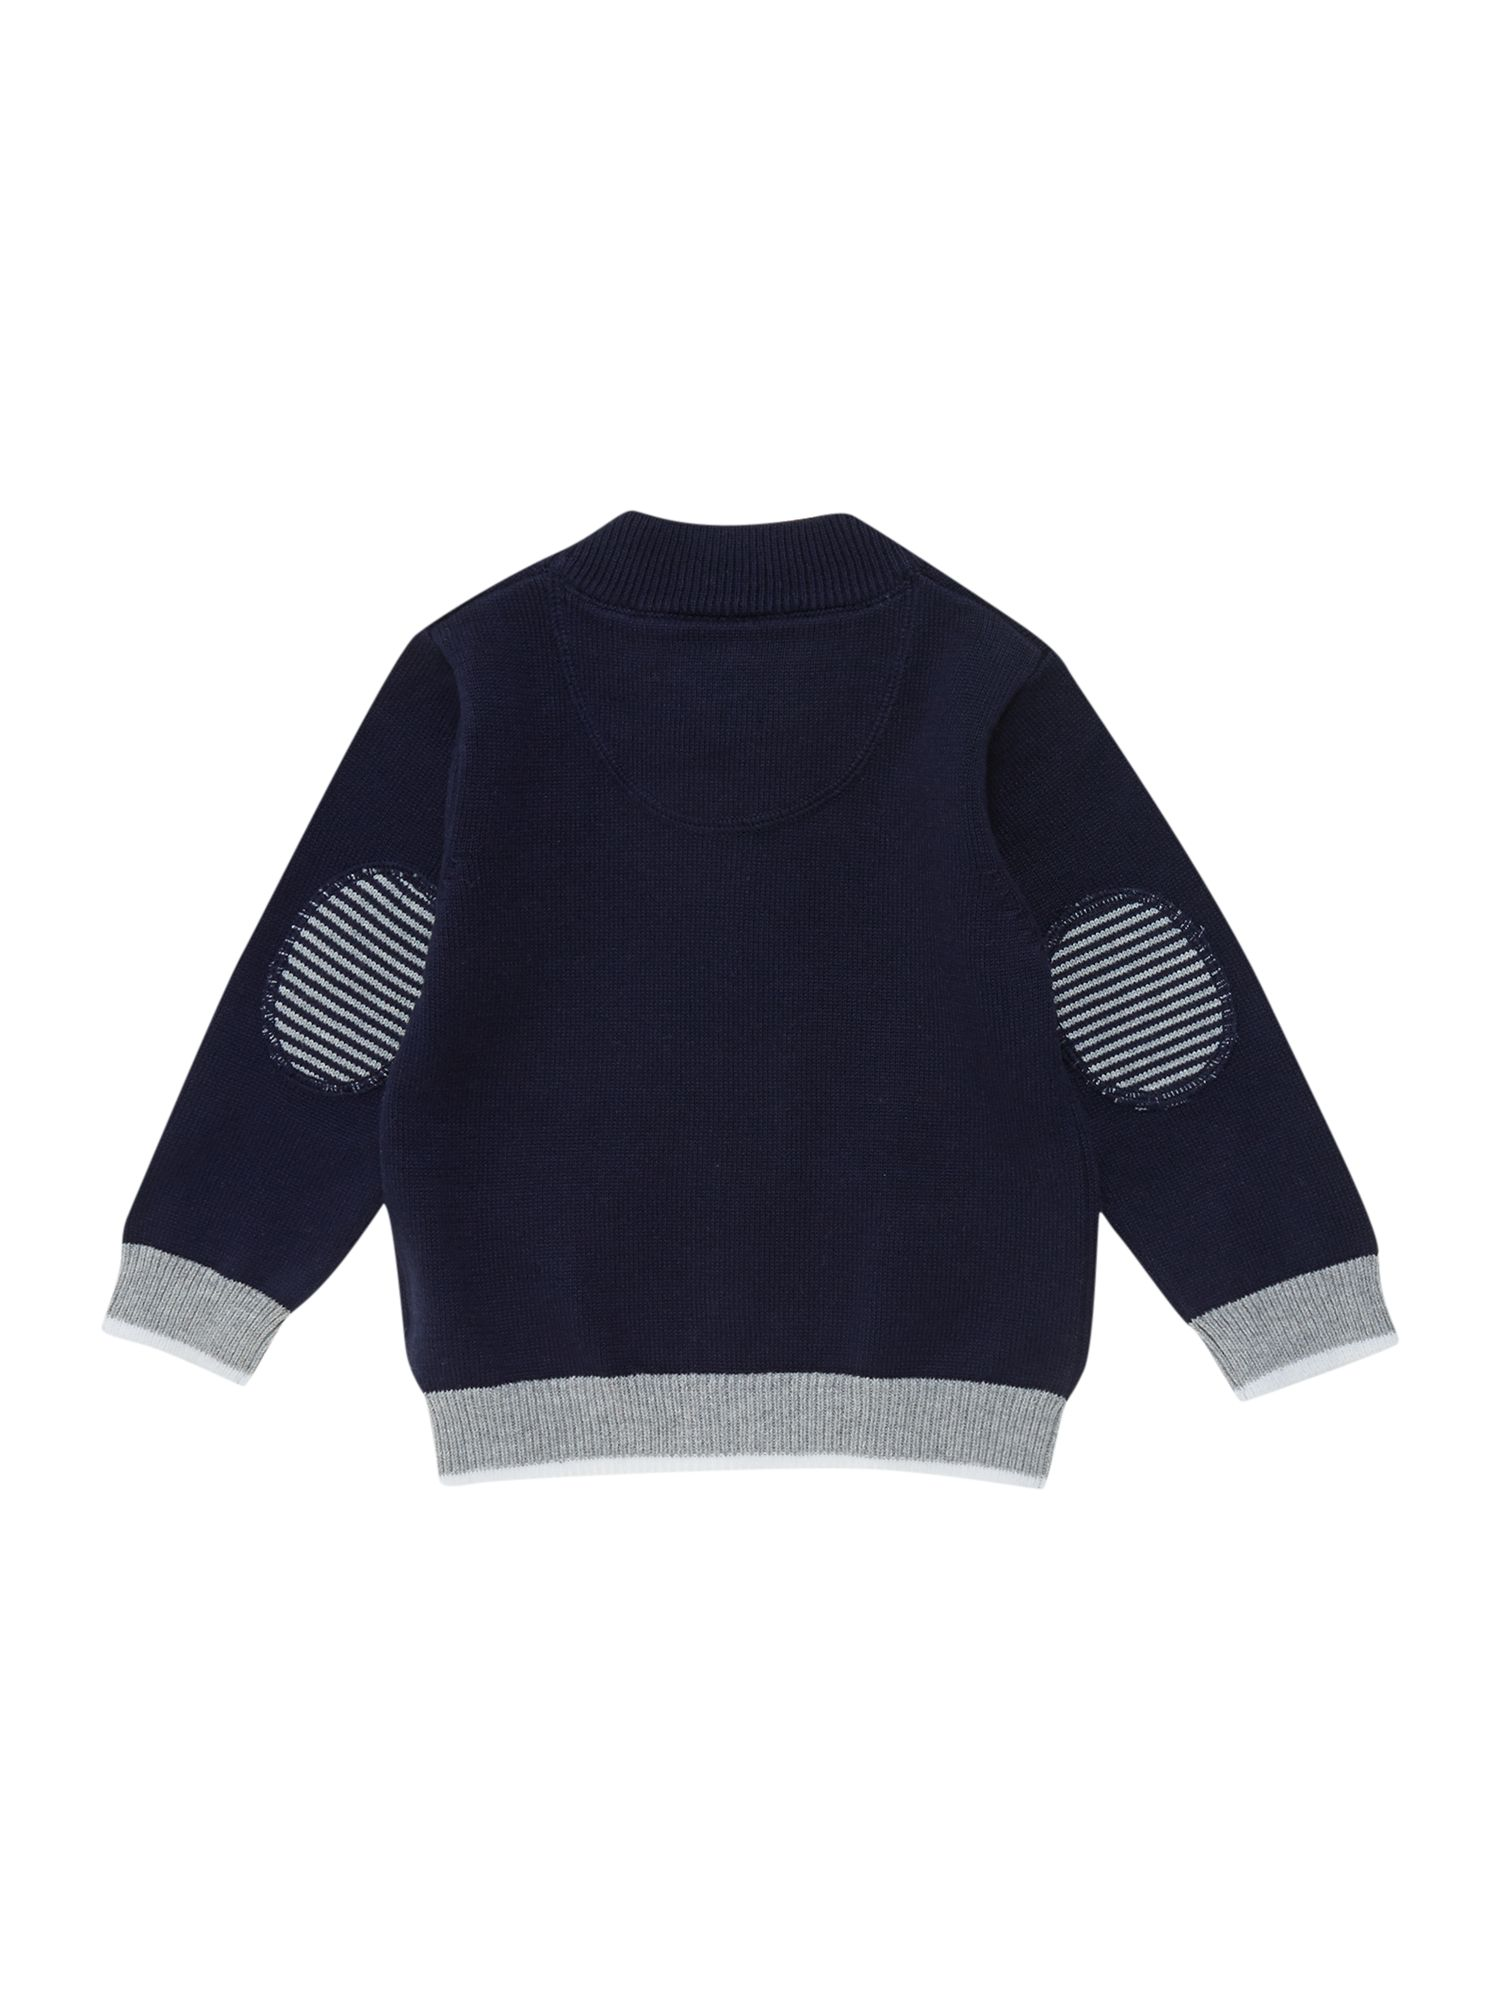 Boys knitted long sleeve cardigan